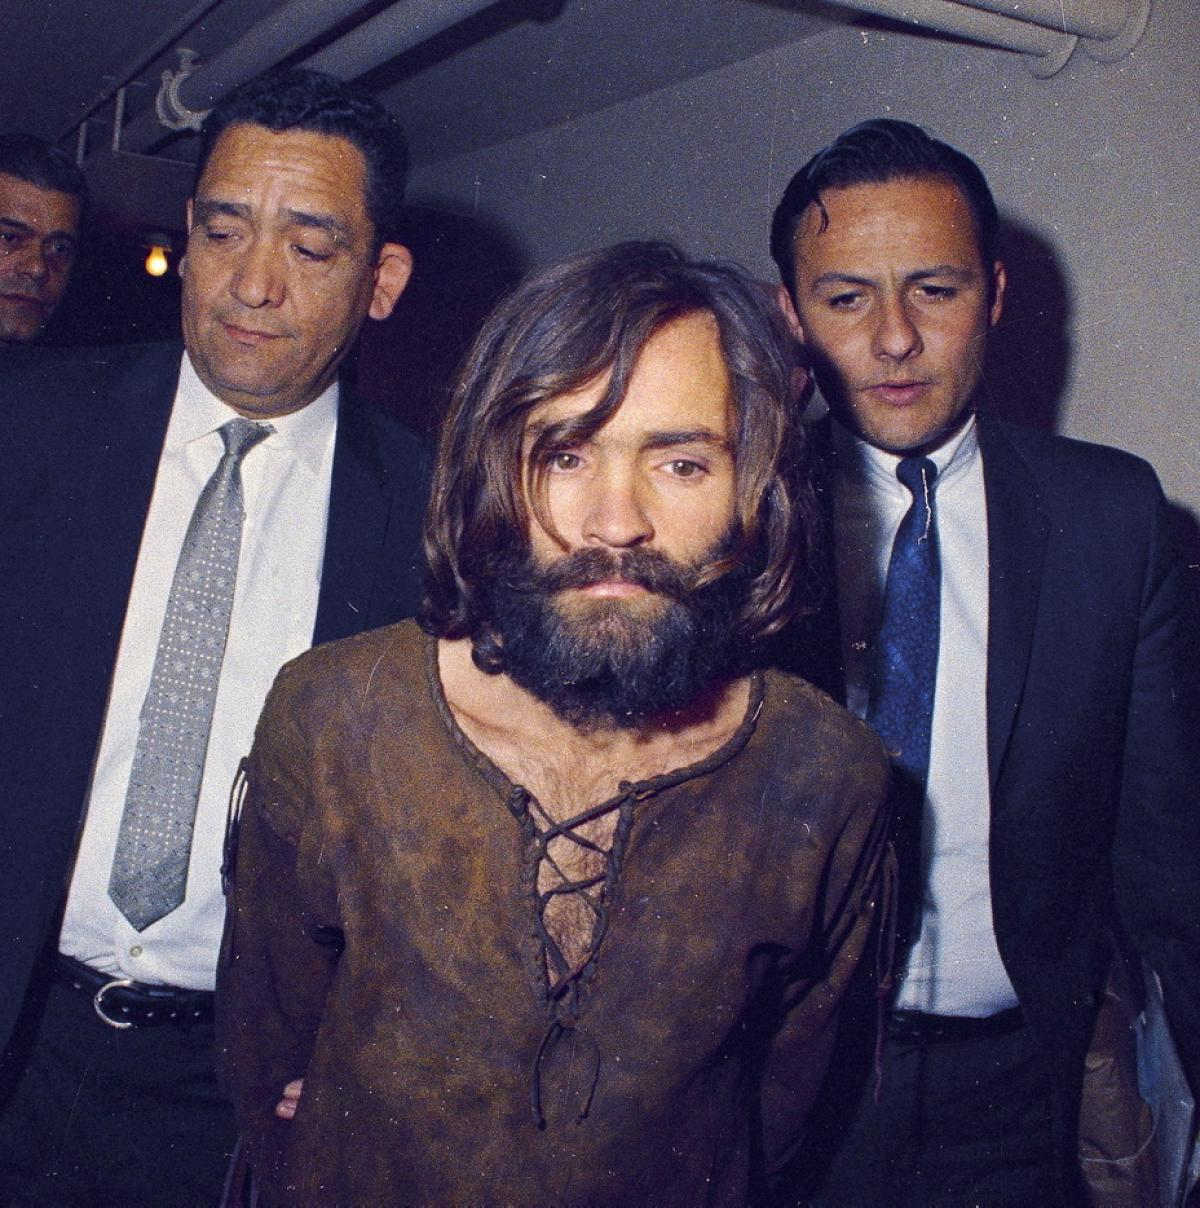 Charles Manson on trial